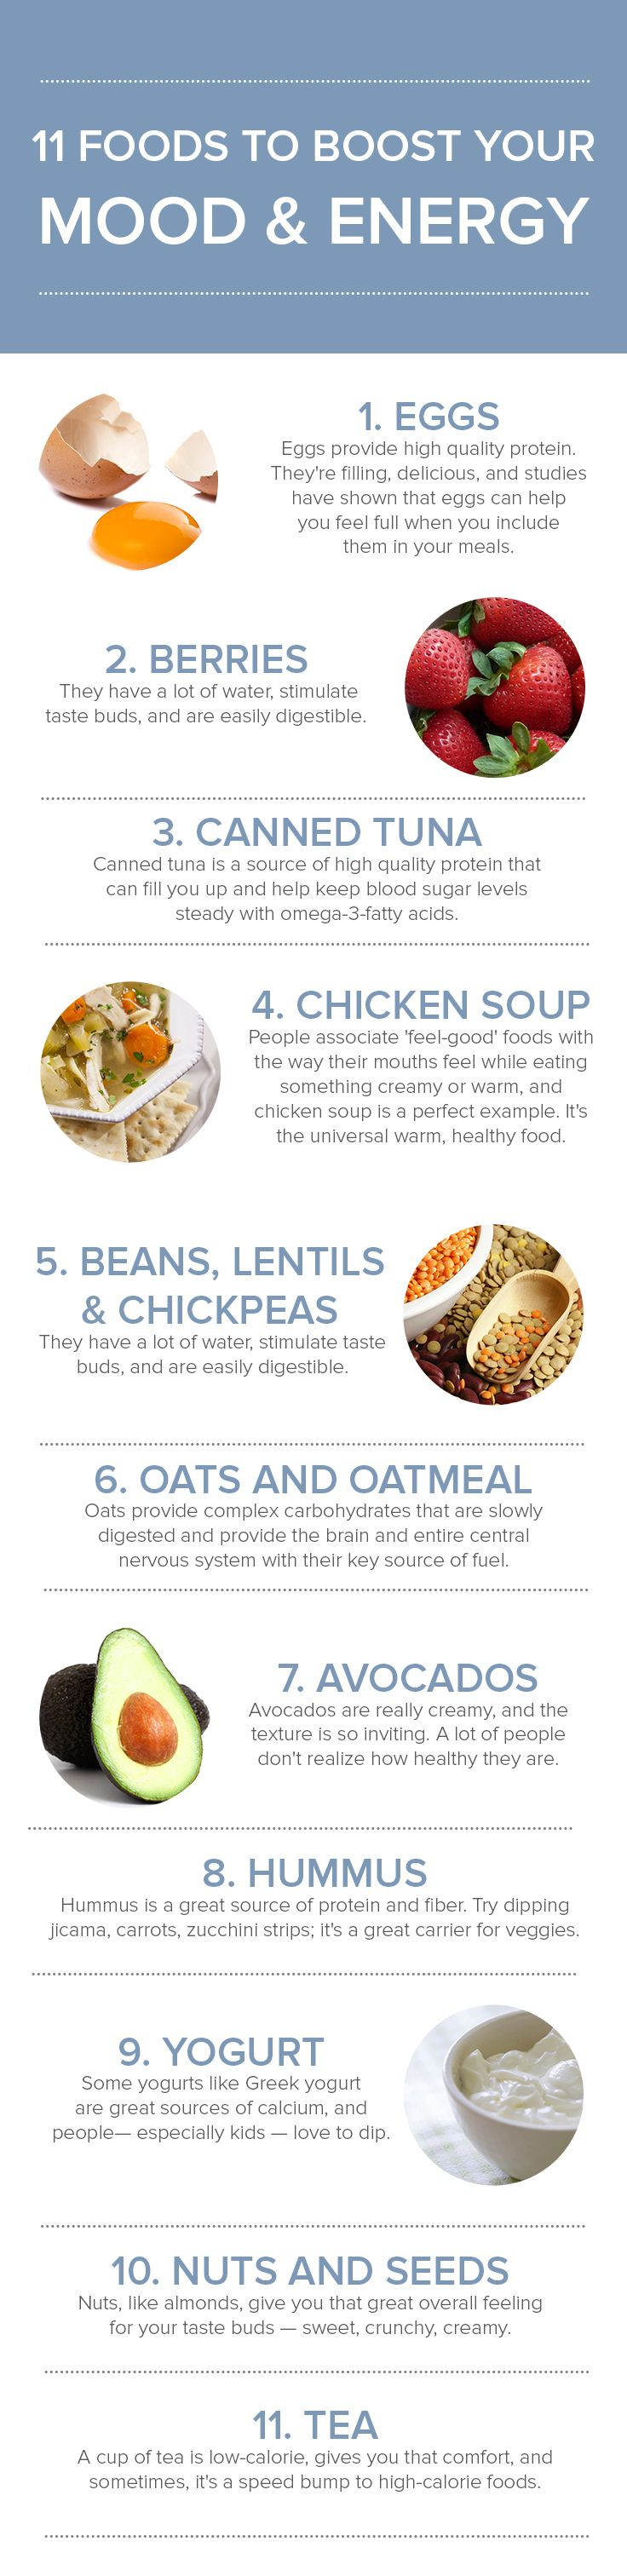 11 Foods That Make You Feel Better An Hour Later Energy Boosting Foods Energy Foods Nutrition